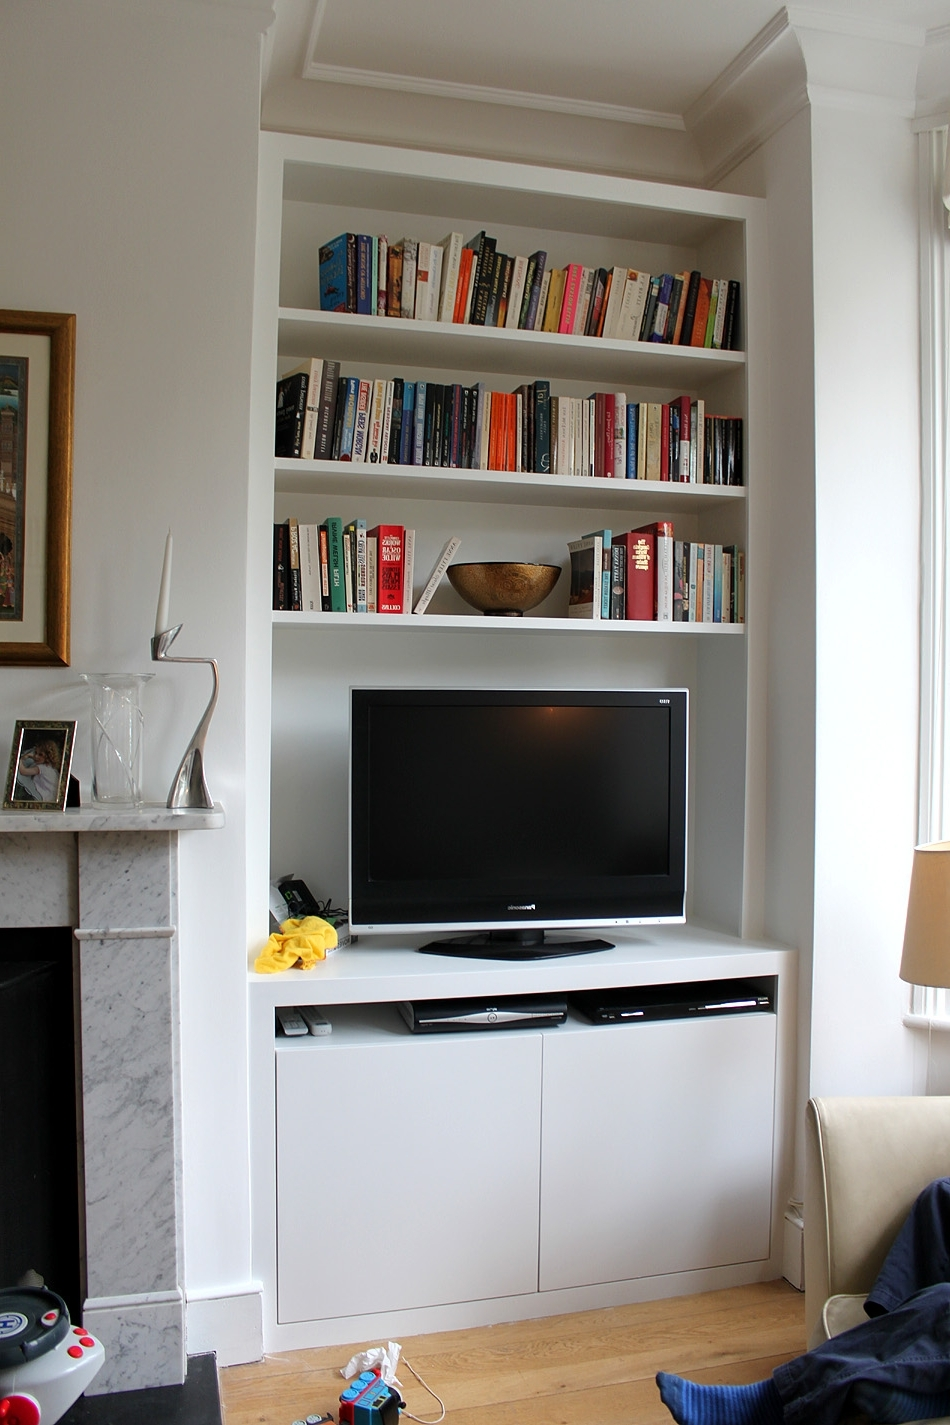 Fitted Wardrobes, Bookcases, Shelving, Floating Shelves, London With Regard To Well Known Tv Bookshelves (View 7 of 15)